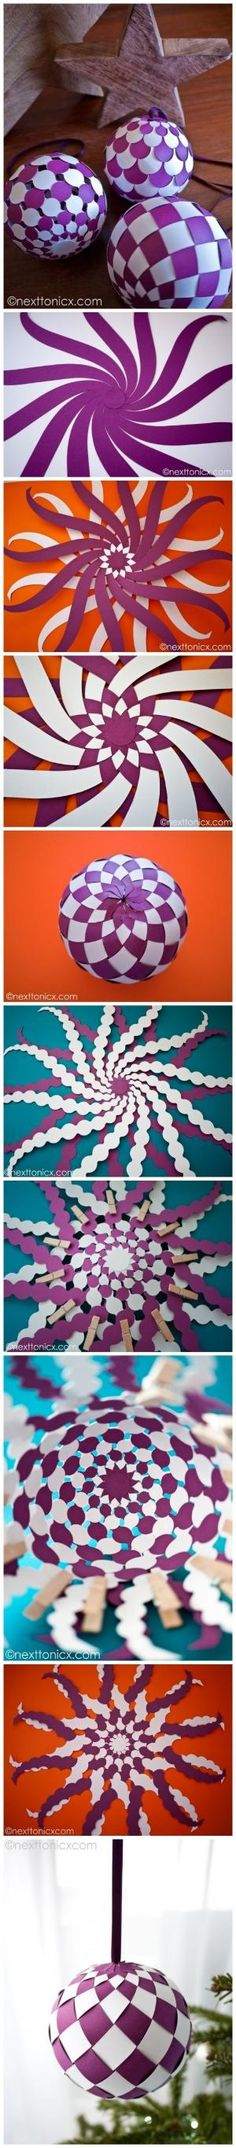 How to make pretty woven paper baubles step by step DIY tutorial instructions , How to, how to do, diy instructions, crafts, do it yourself, by Mary Smith fSesz